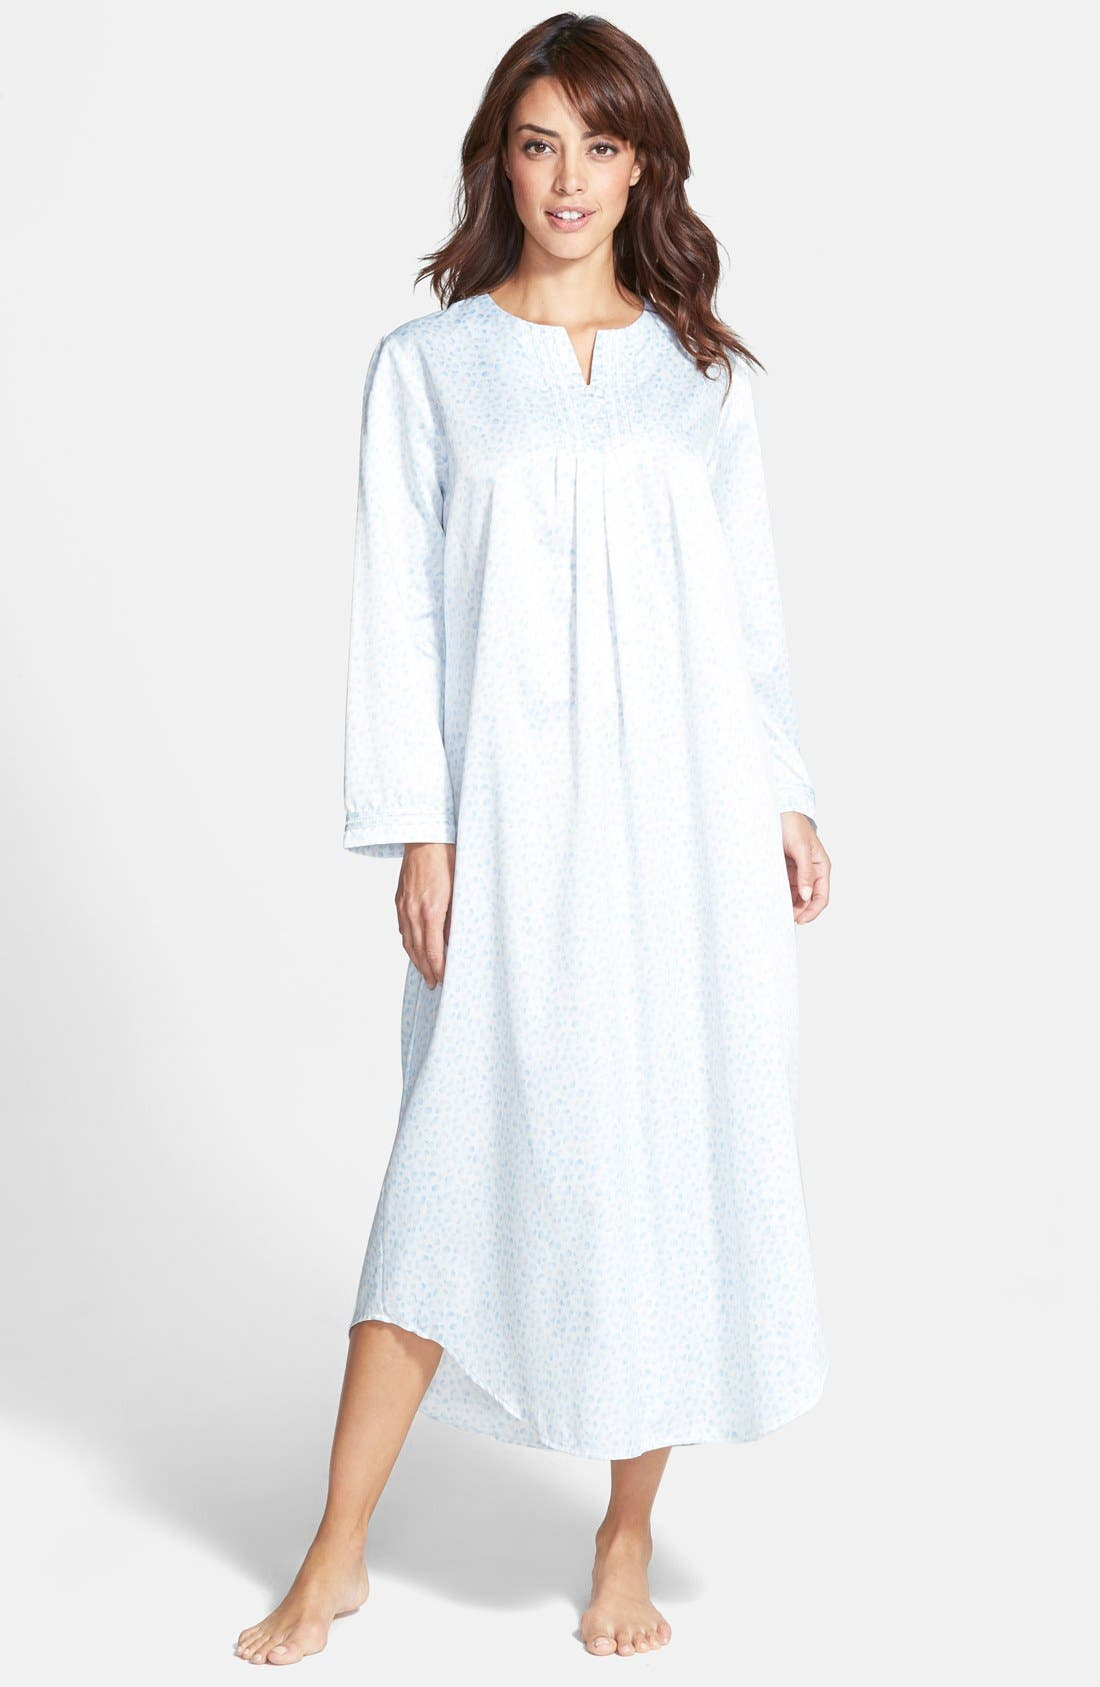 Carole Hochman Designs Brushed Back Satin Nightgown Nordstrom